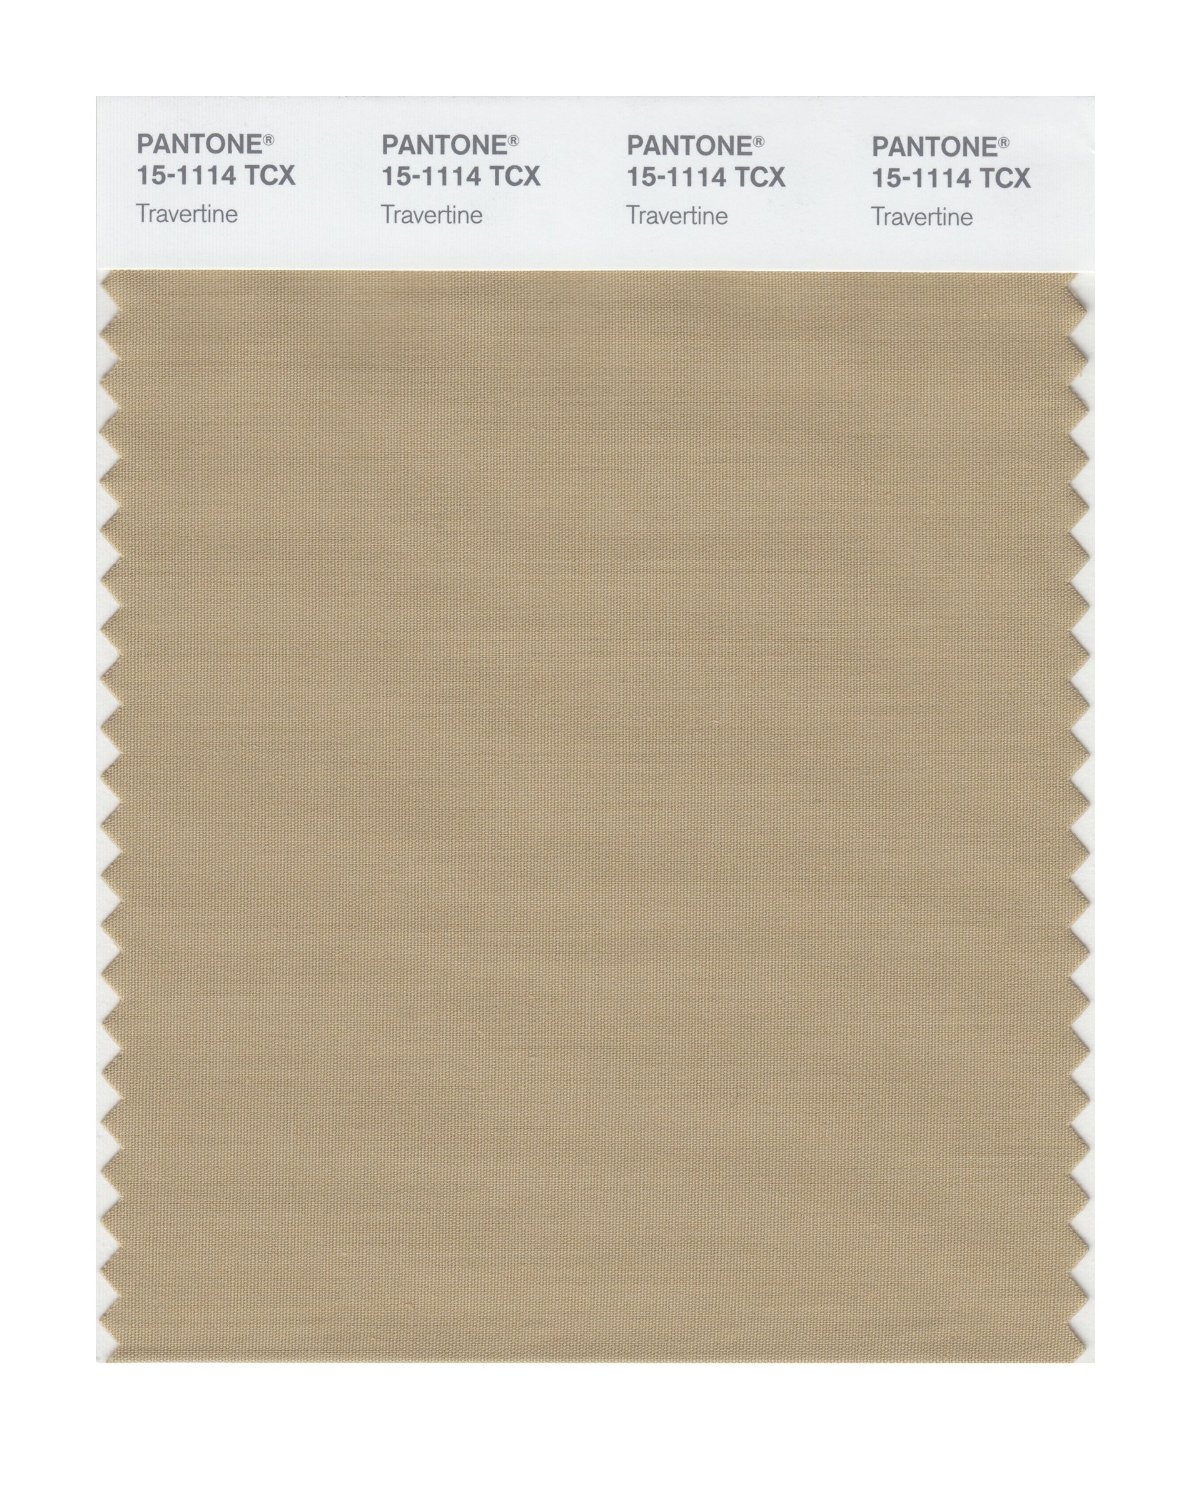 Pantone Smart Swatch 15-1114 Travertine